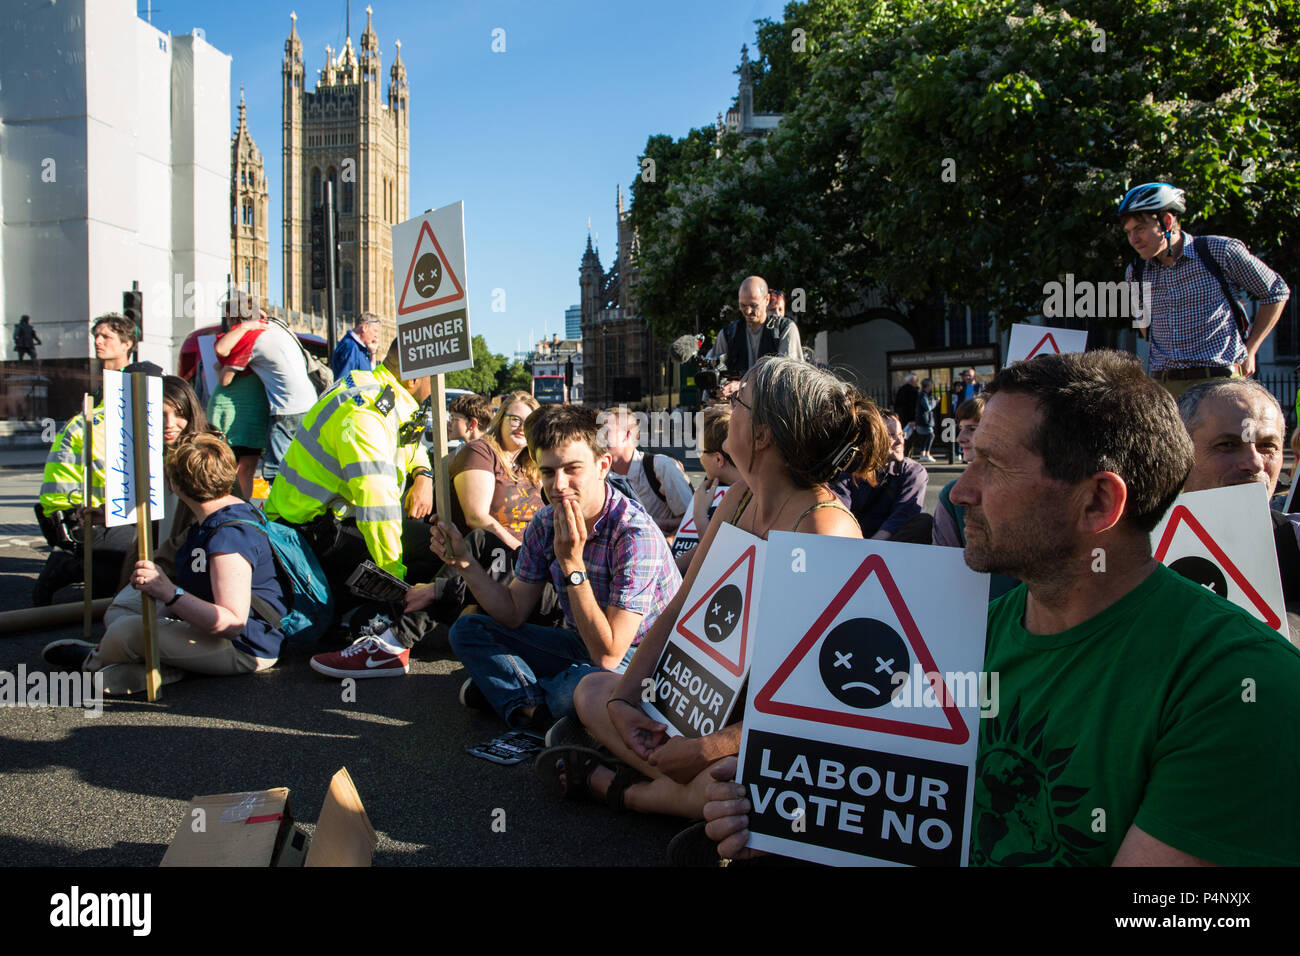 London, UK. 22nd June, 2018. Campaigners from Vote No Heathrow, some of whom have been on hunger strike for 14 days, block the road in Parliament Square to protest against the Government's plans to allow, and the lack of Labour opposition to, a third runway at Heathrow airport. A vote on the issue is to be held in the House of Commons on Monday and the campaigners have in particular been calling on the Labour Party to whip its MPs to oppose Heathrow expansion. Stock Photo